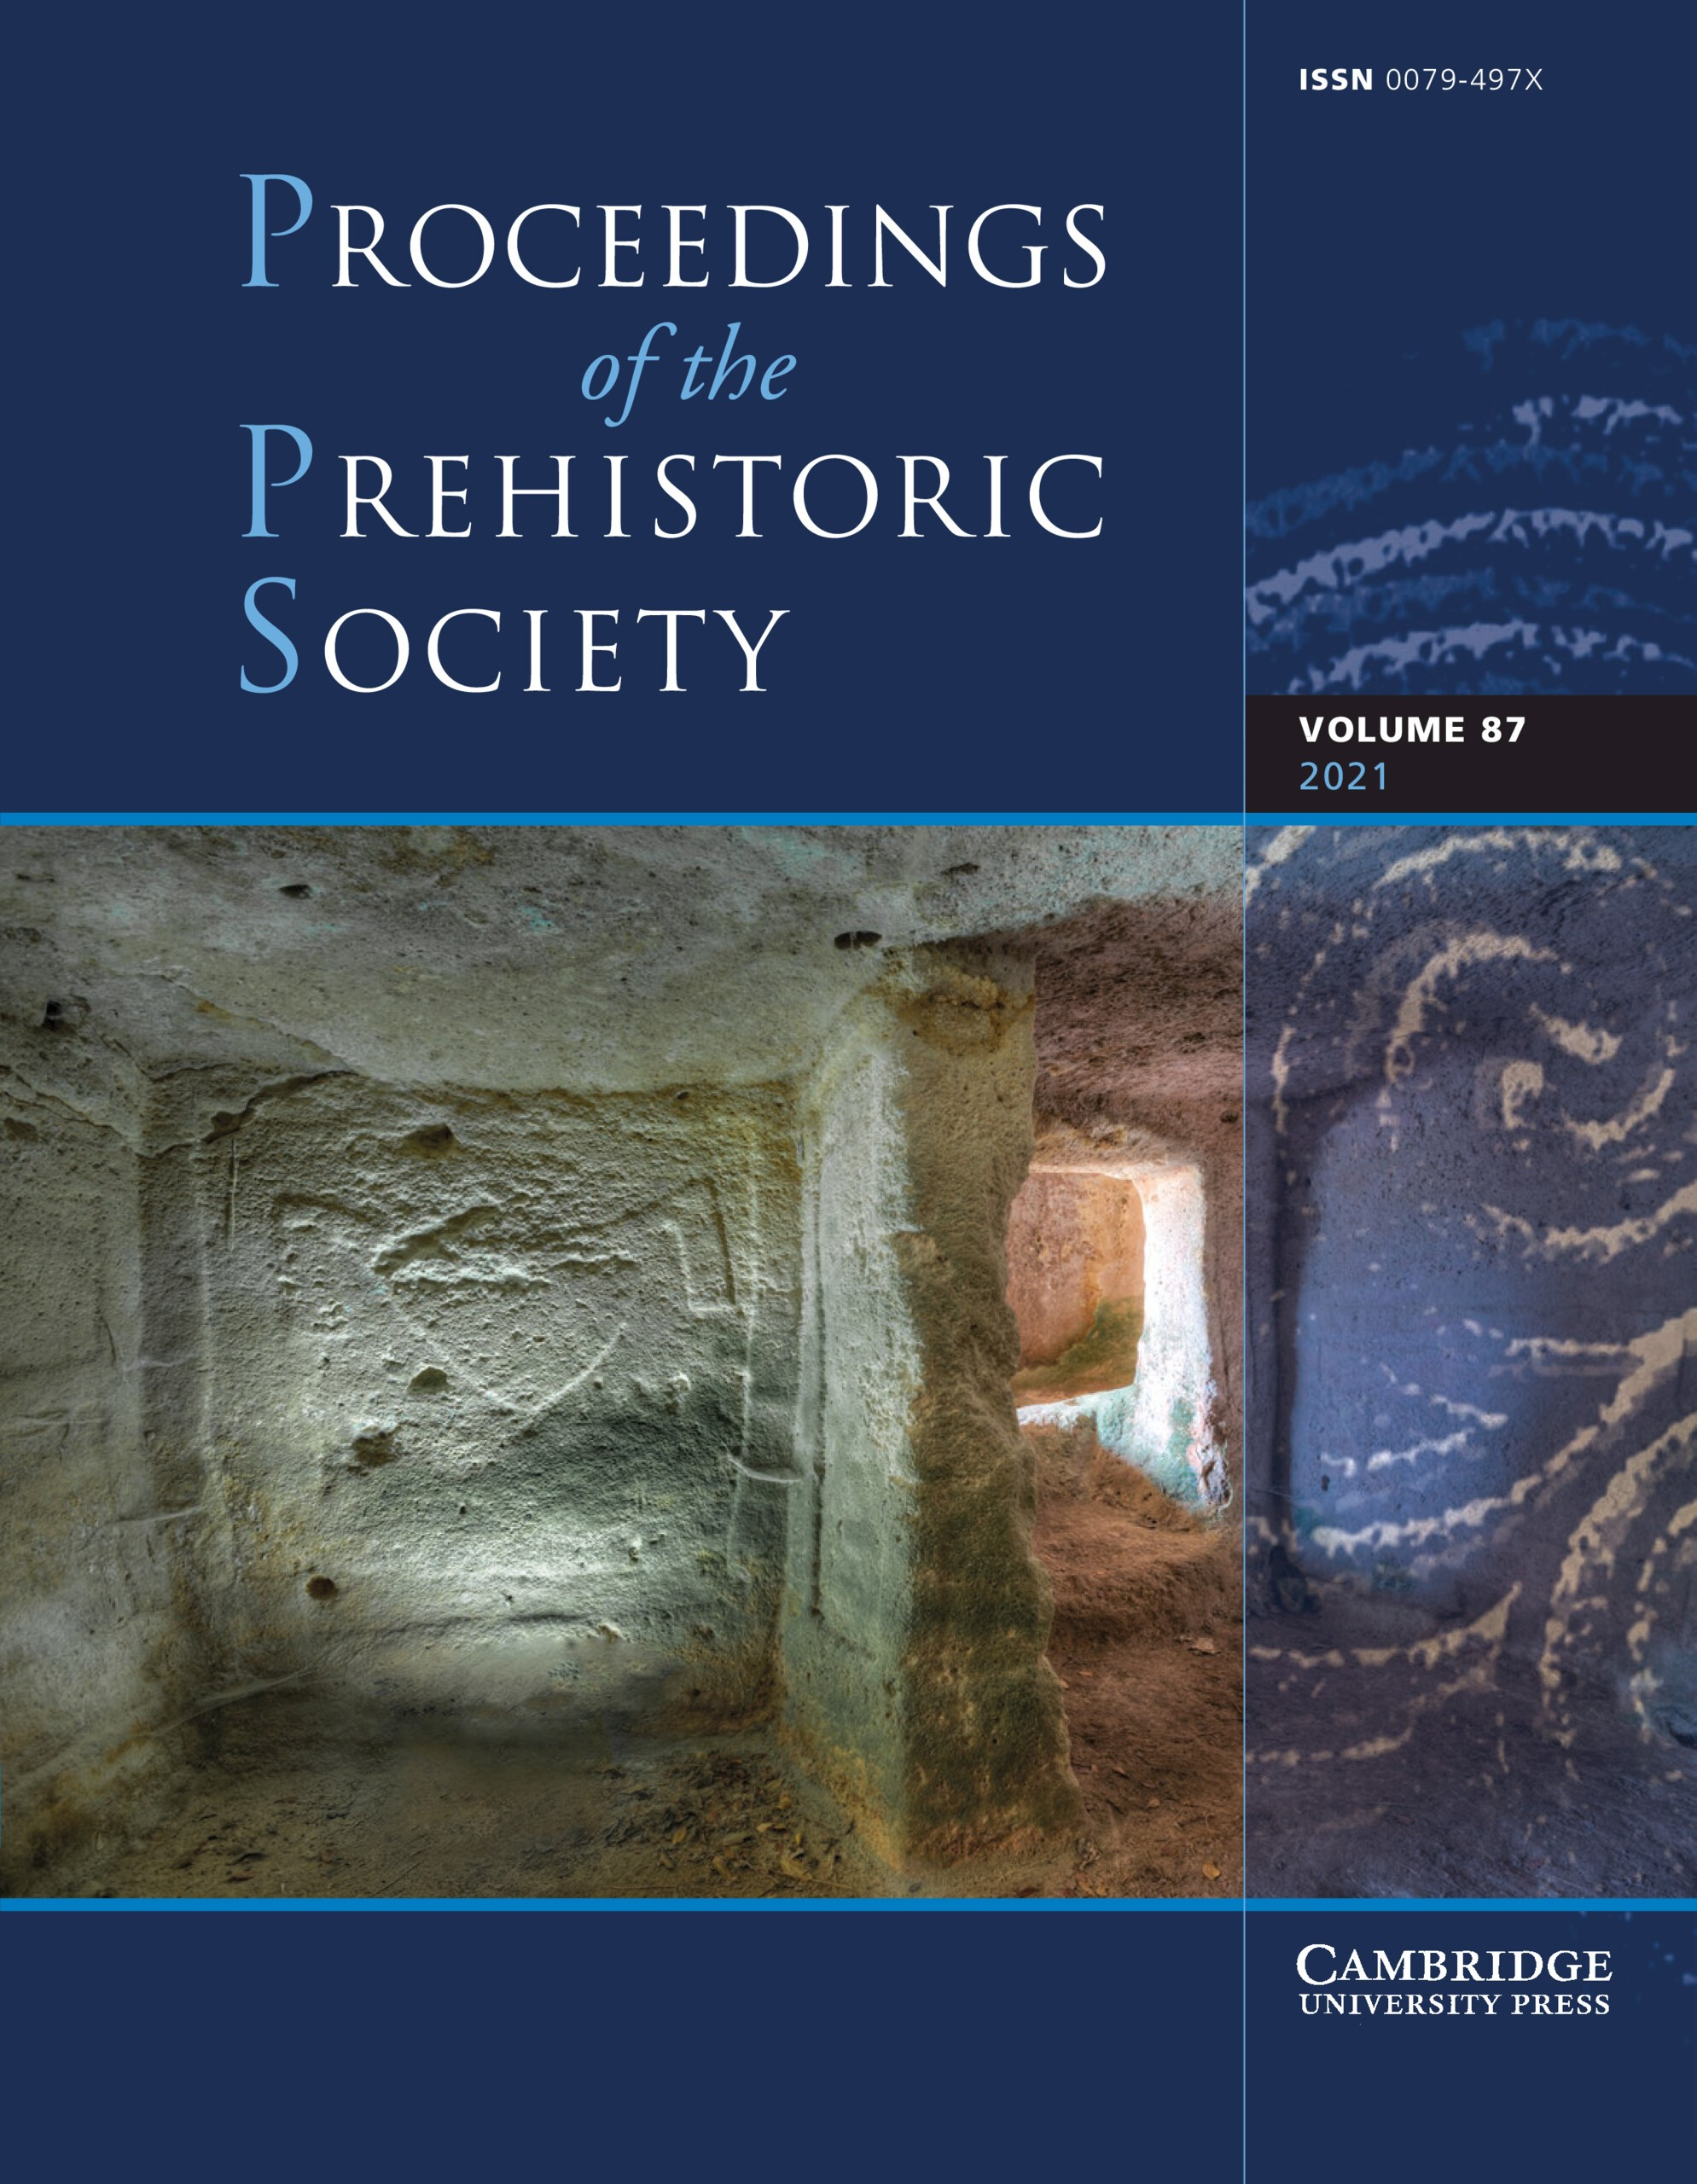 Proceedings of the Prehistoric Society